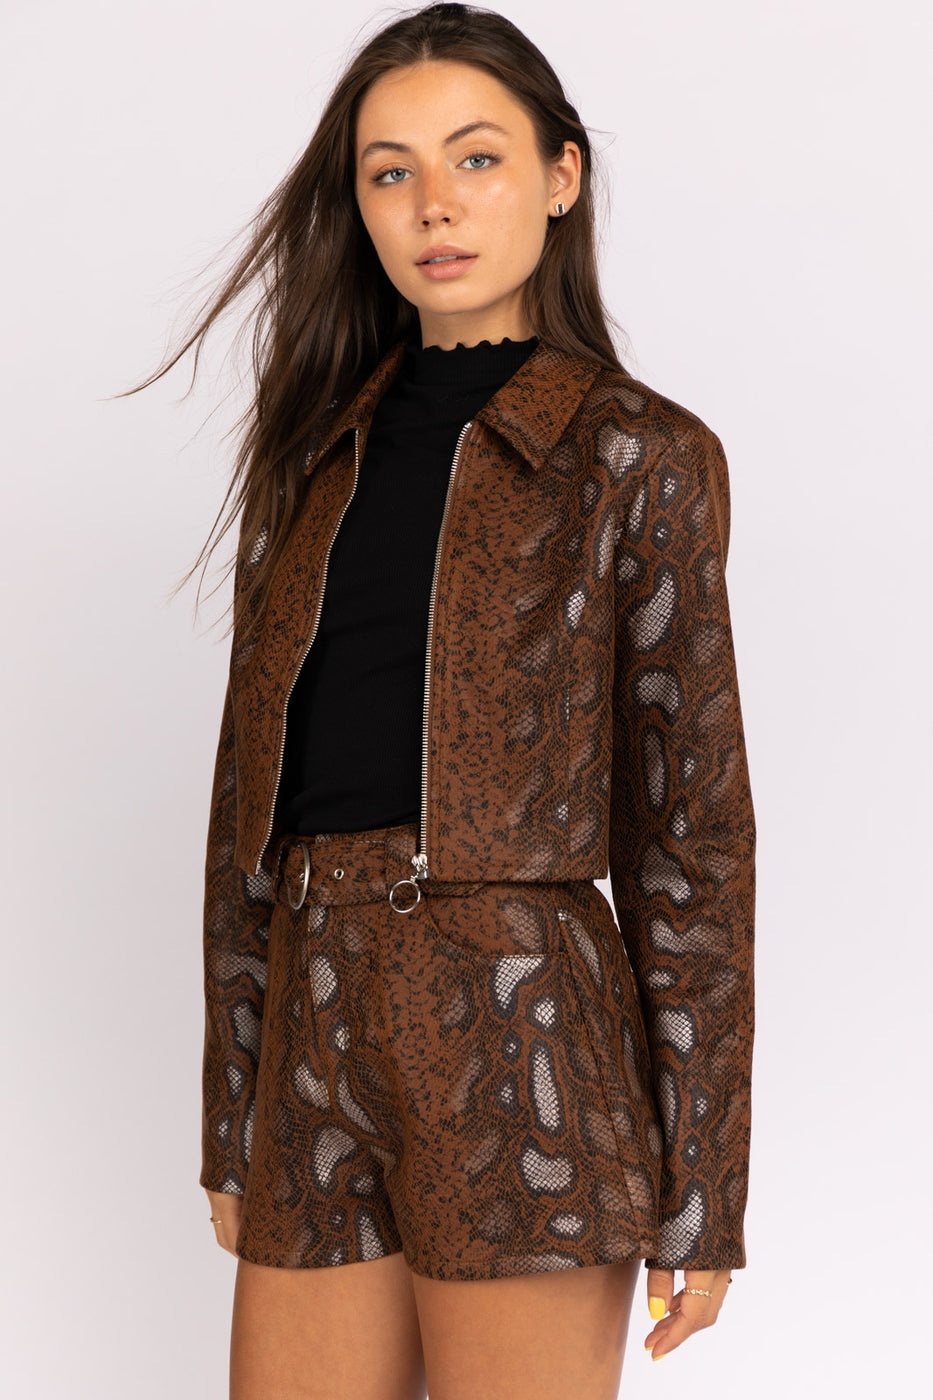 Snake Skin Jacket In Brown Python Siin Bees